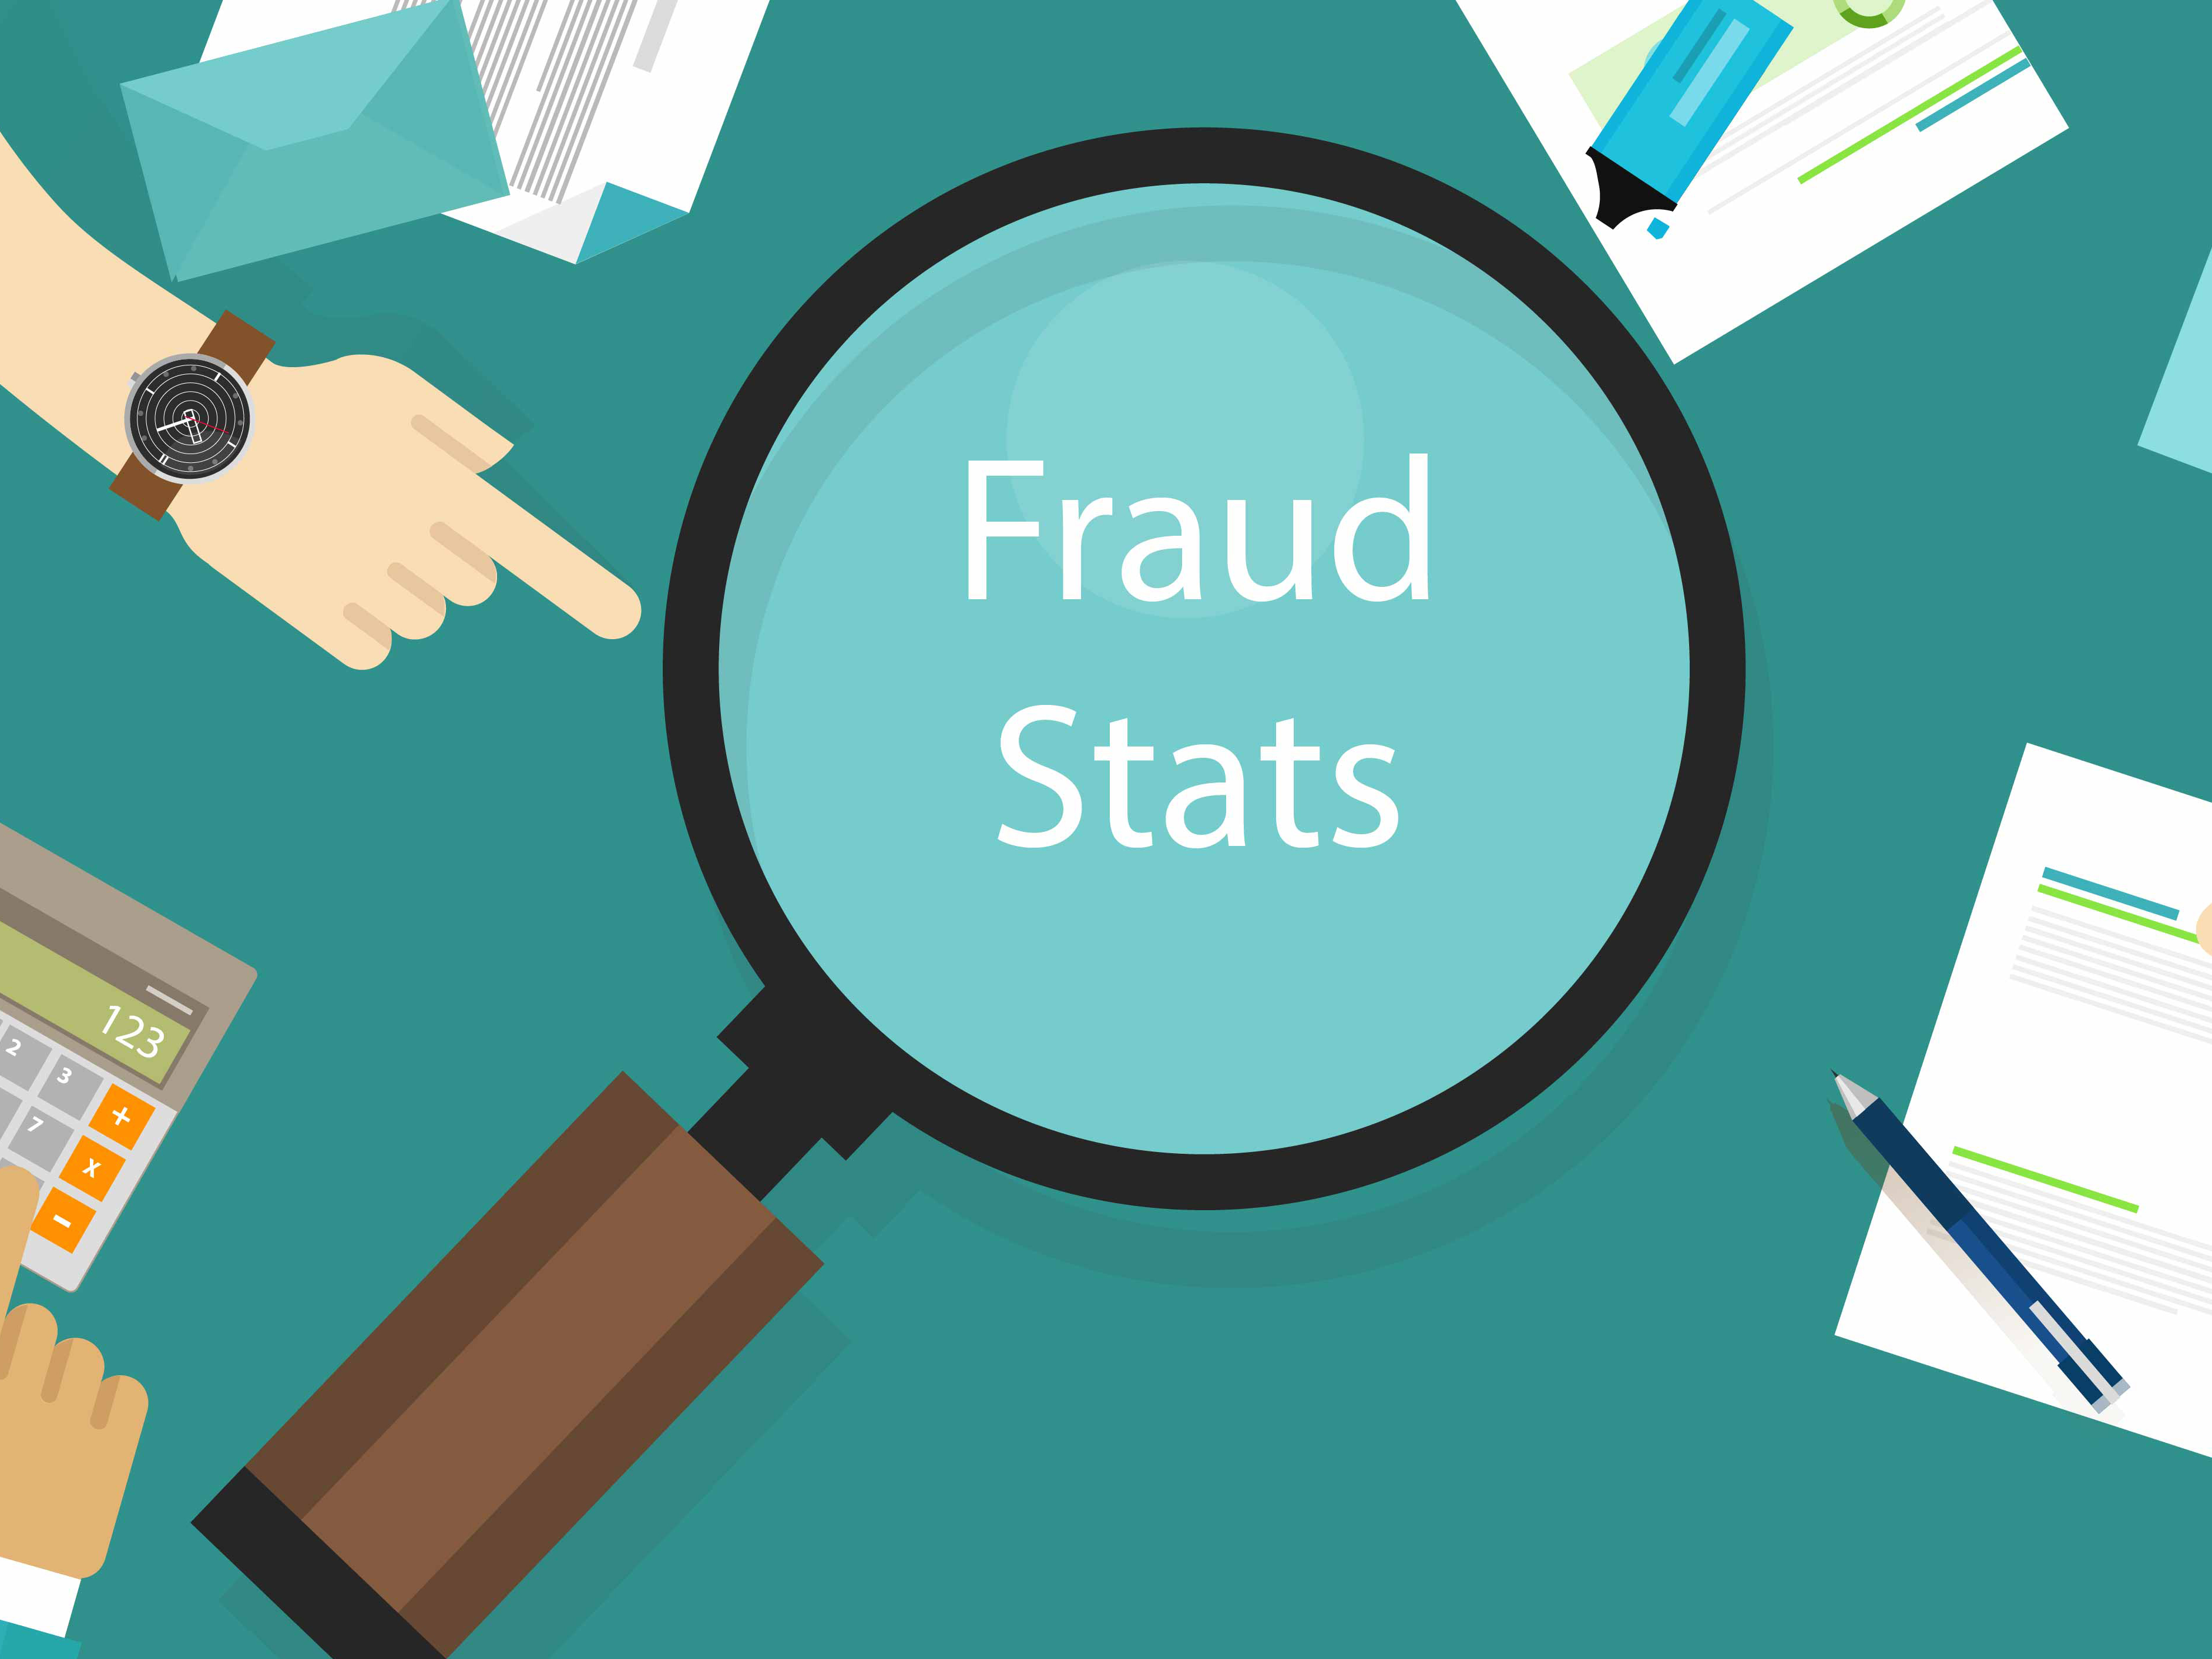 Why Me?! Stats about Fraud